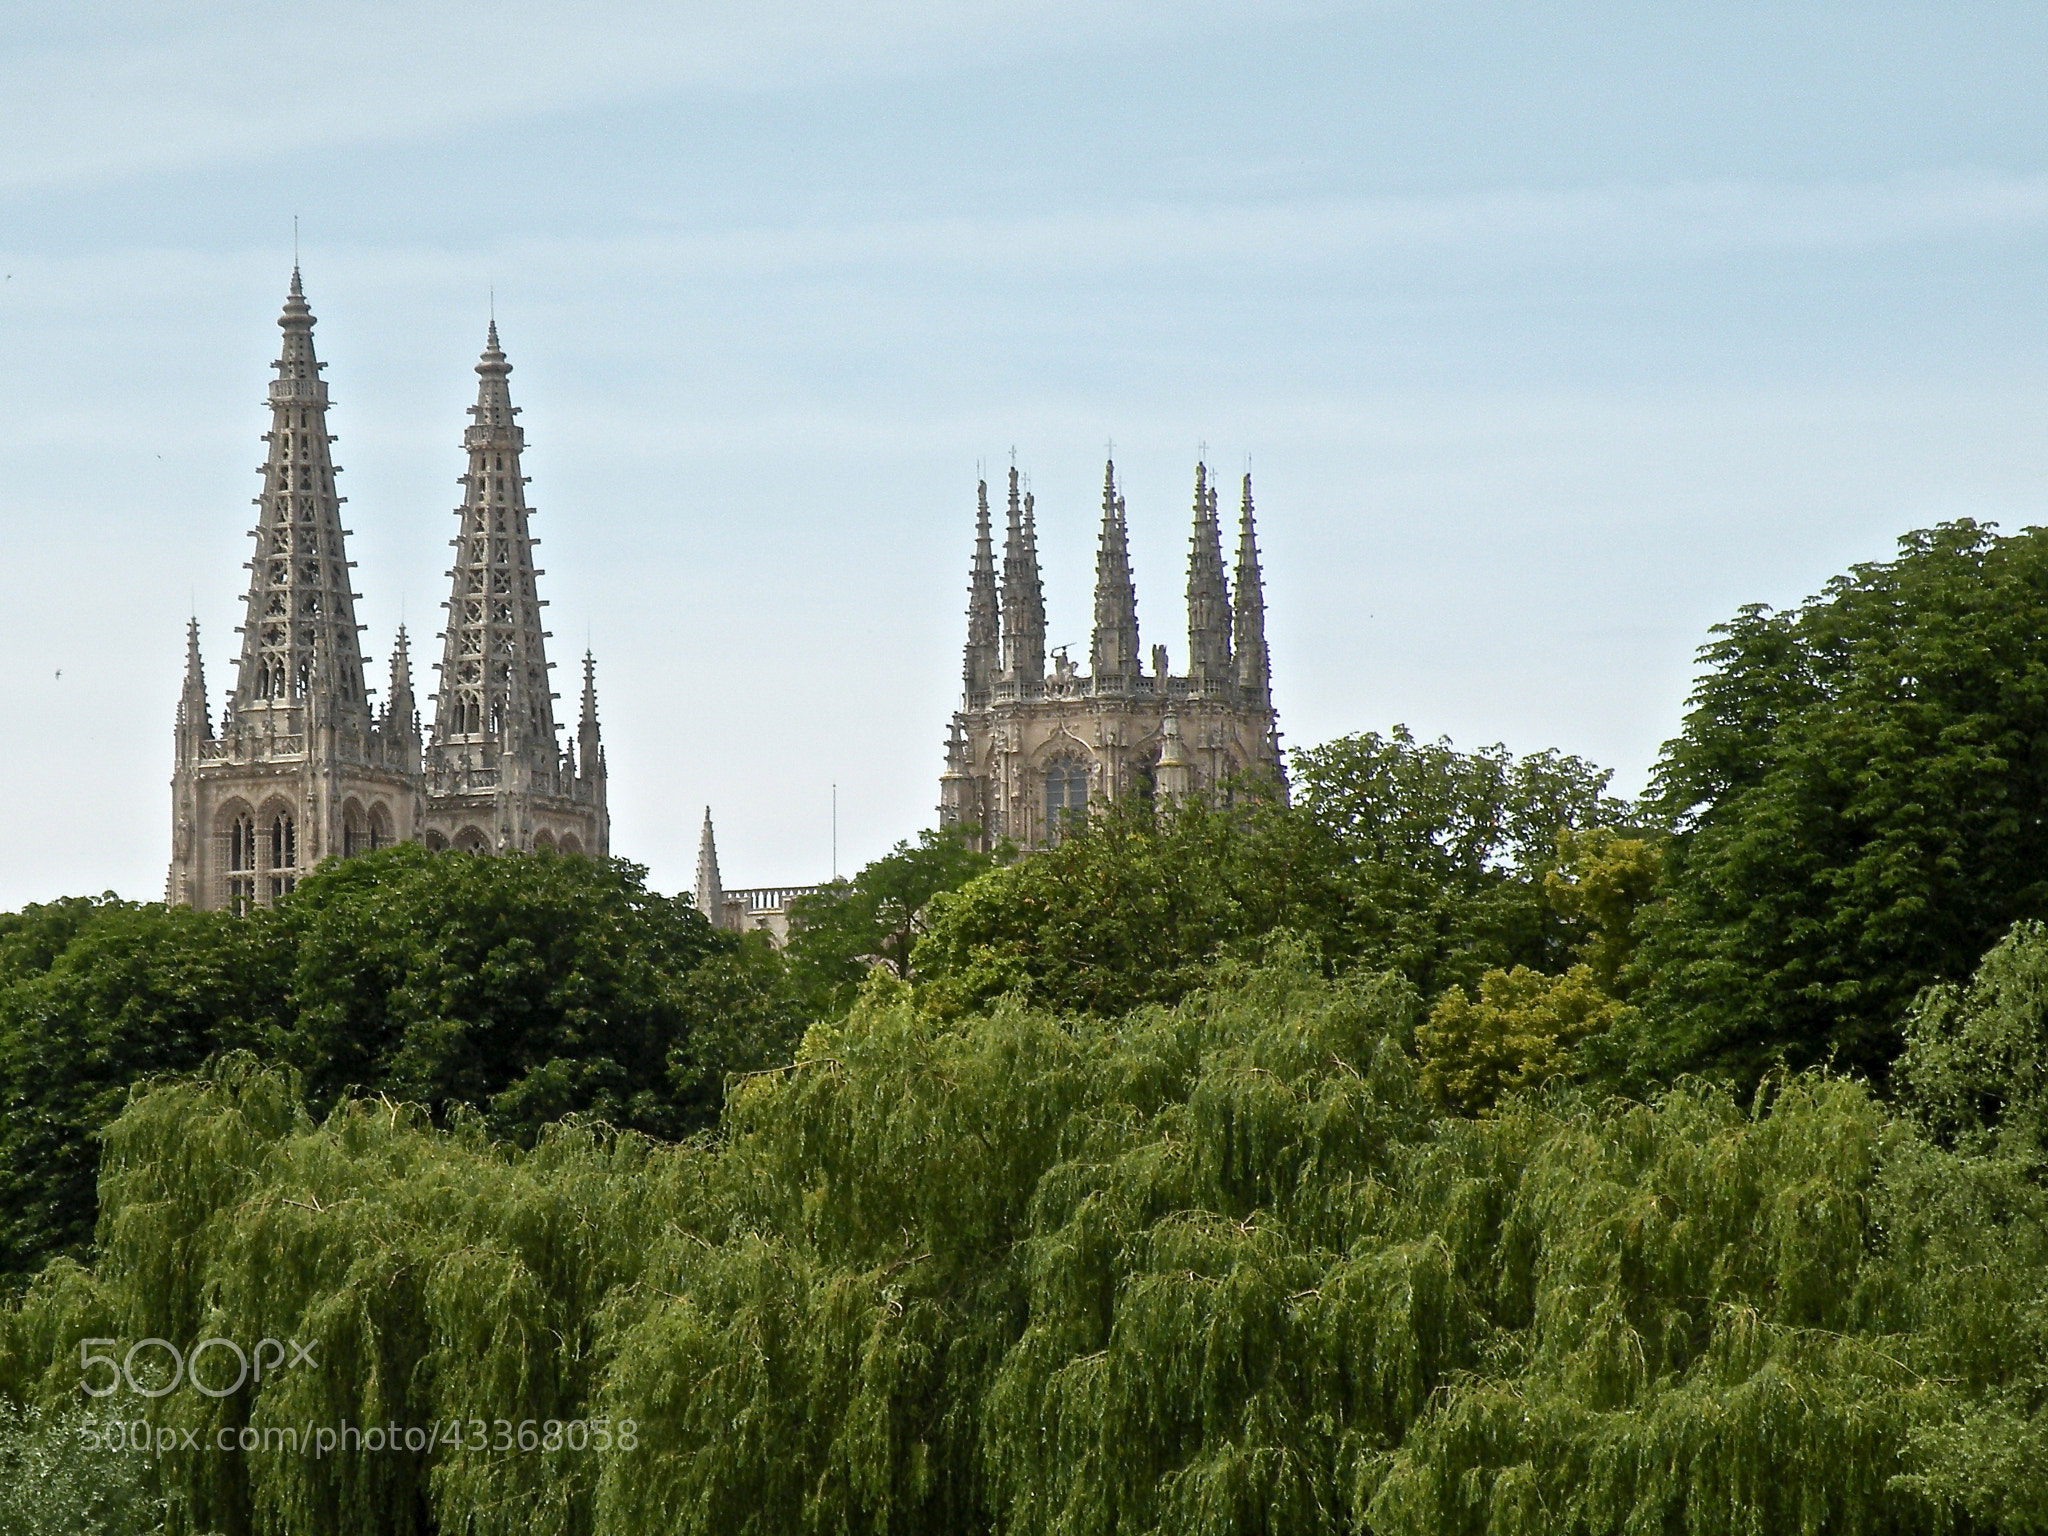 Photograph Catedral de Burgos by Jose Maria Vidal Sanz on 500px